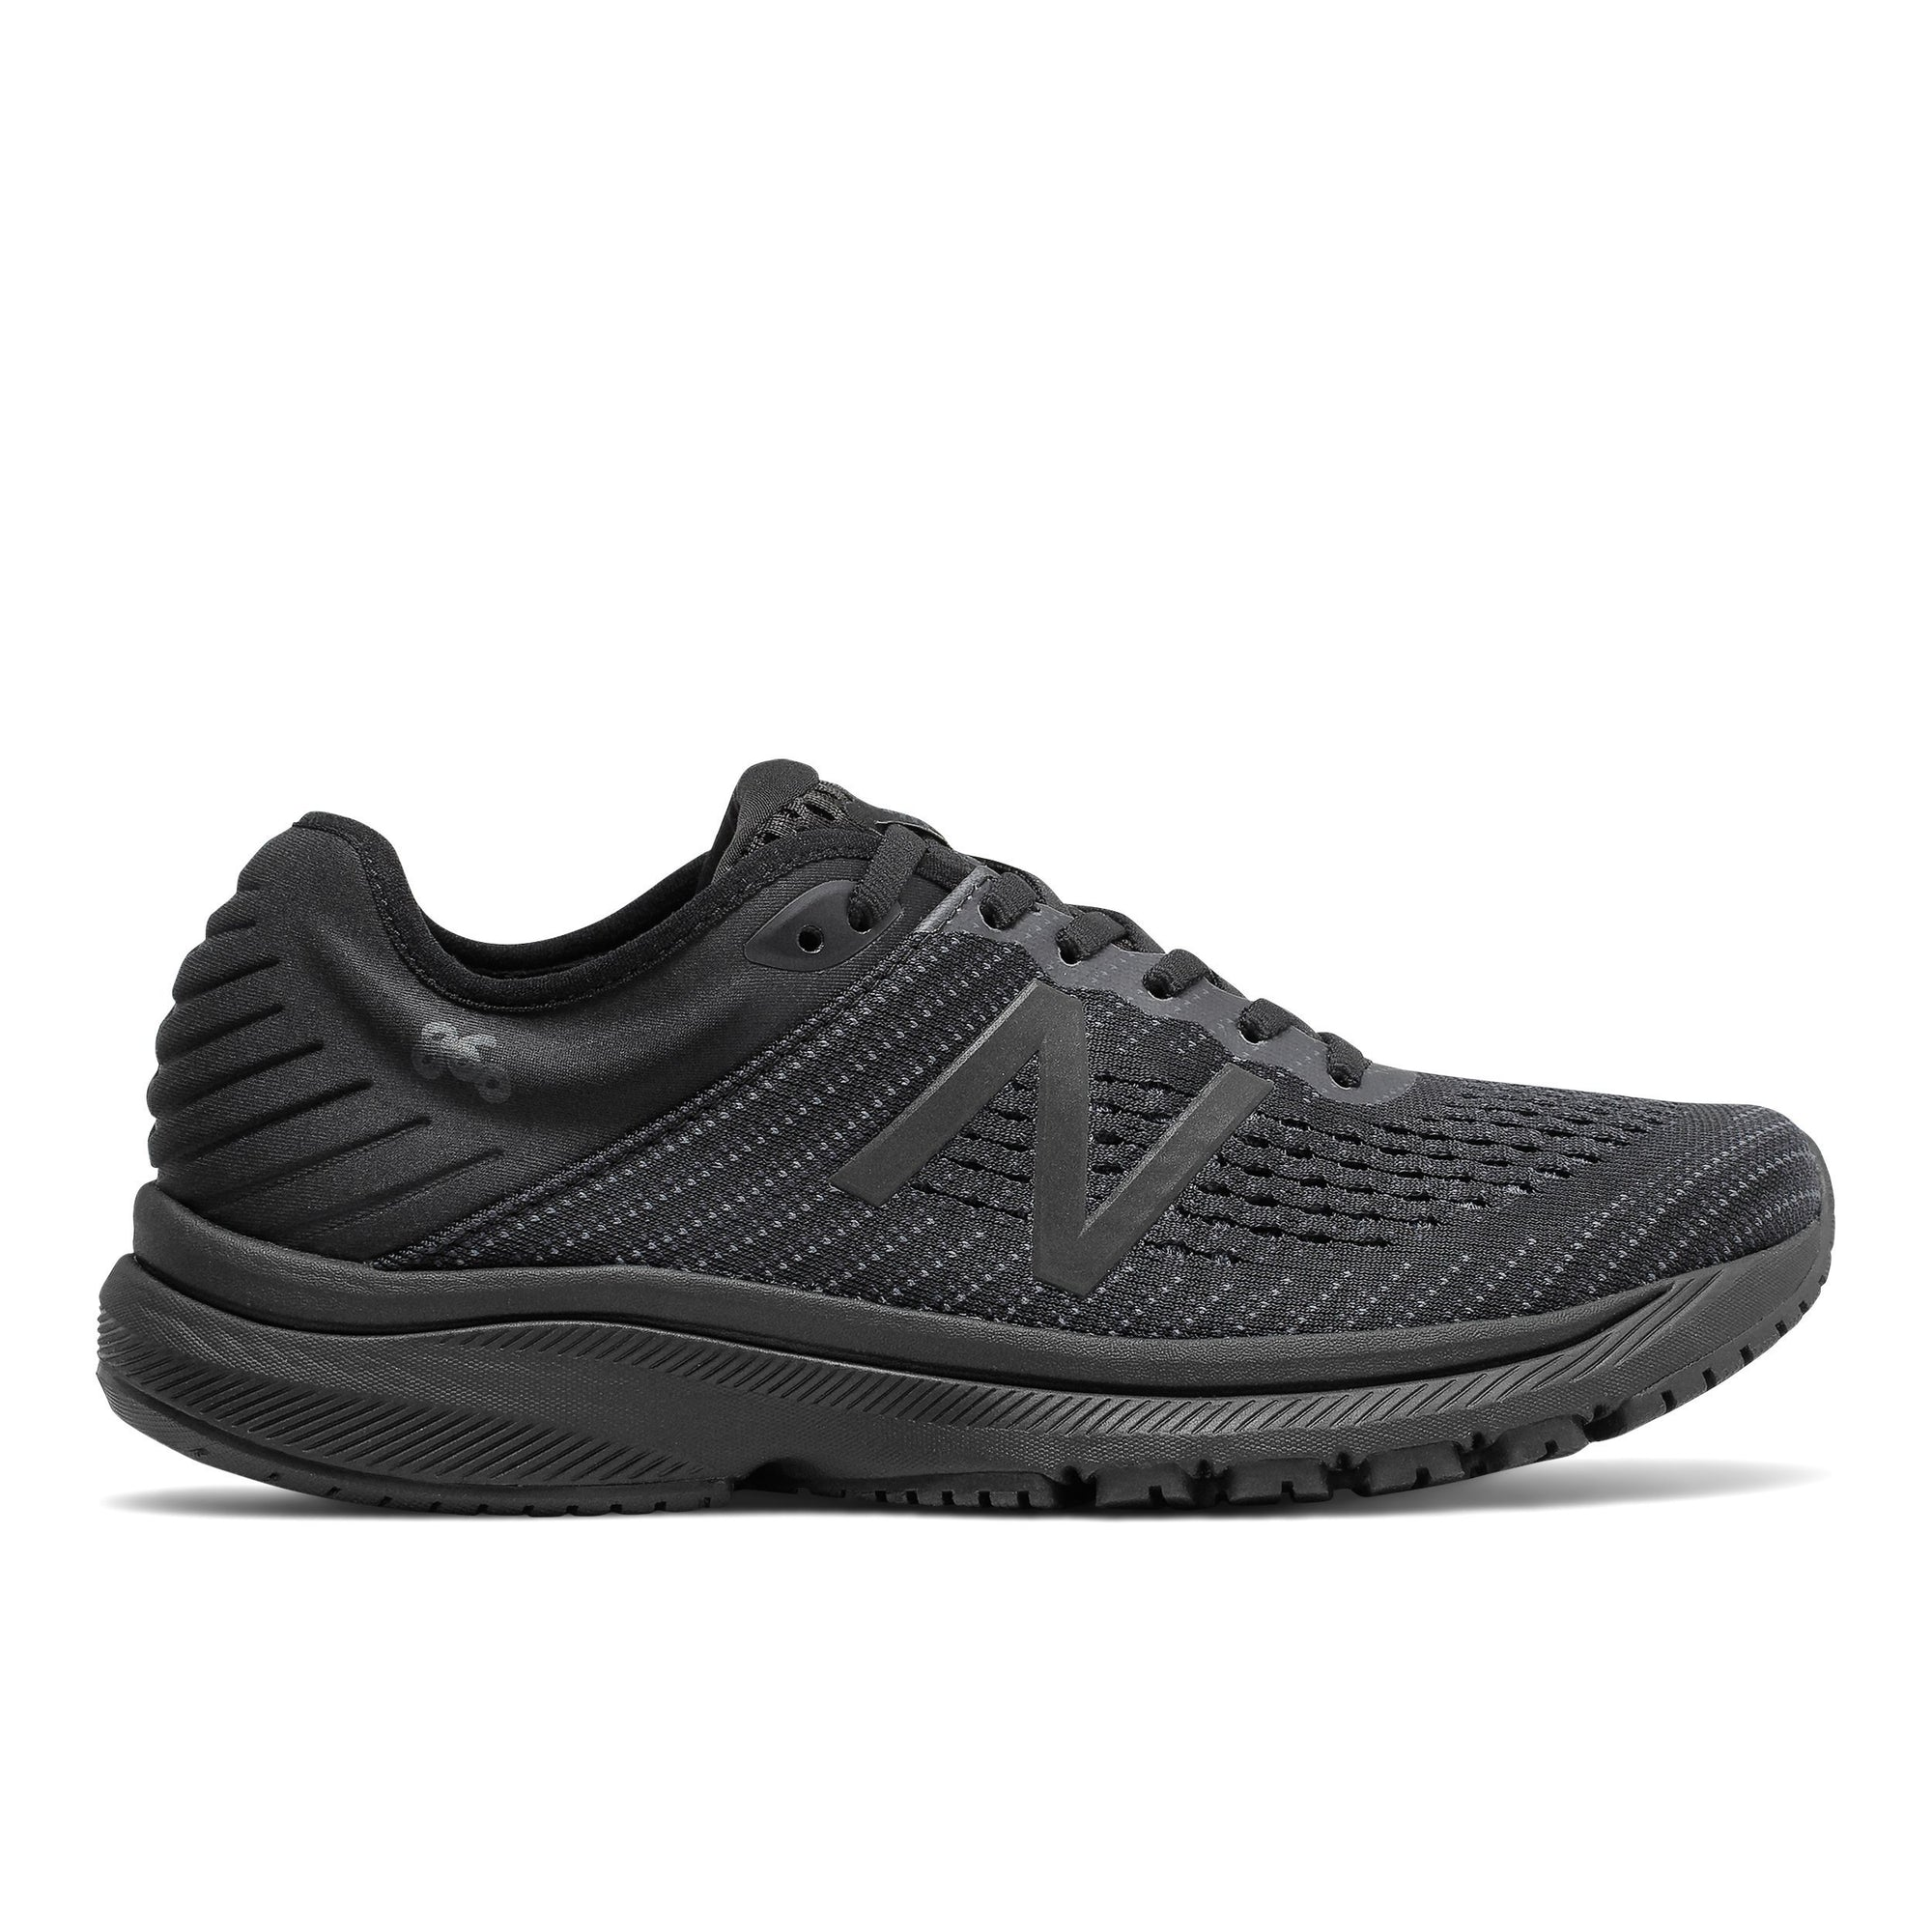 New Balance Womens 860v10 - Triple Black SP-Footwear-Womens New Balance